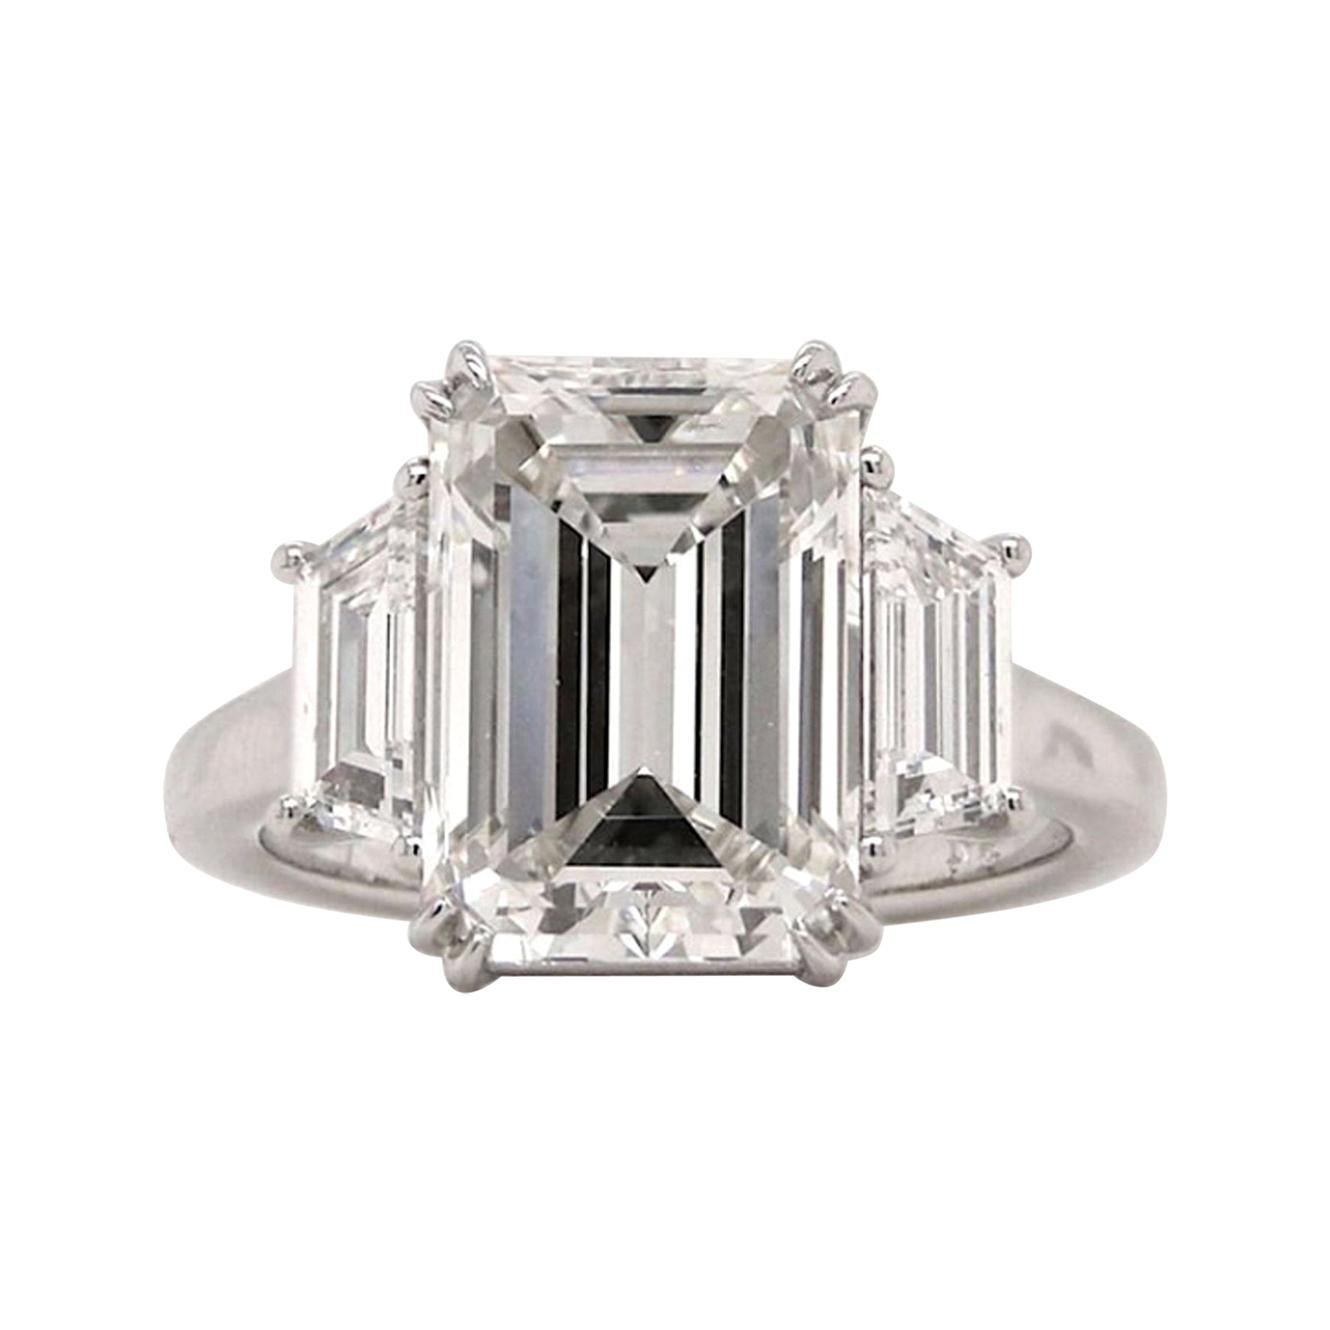 GIA Certified 3 Carat Excellent Cut Emerald Cut Diamond Platinum Ring